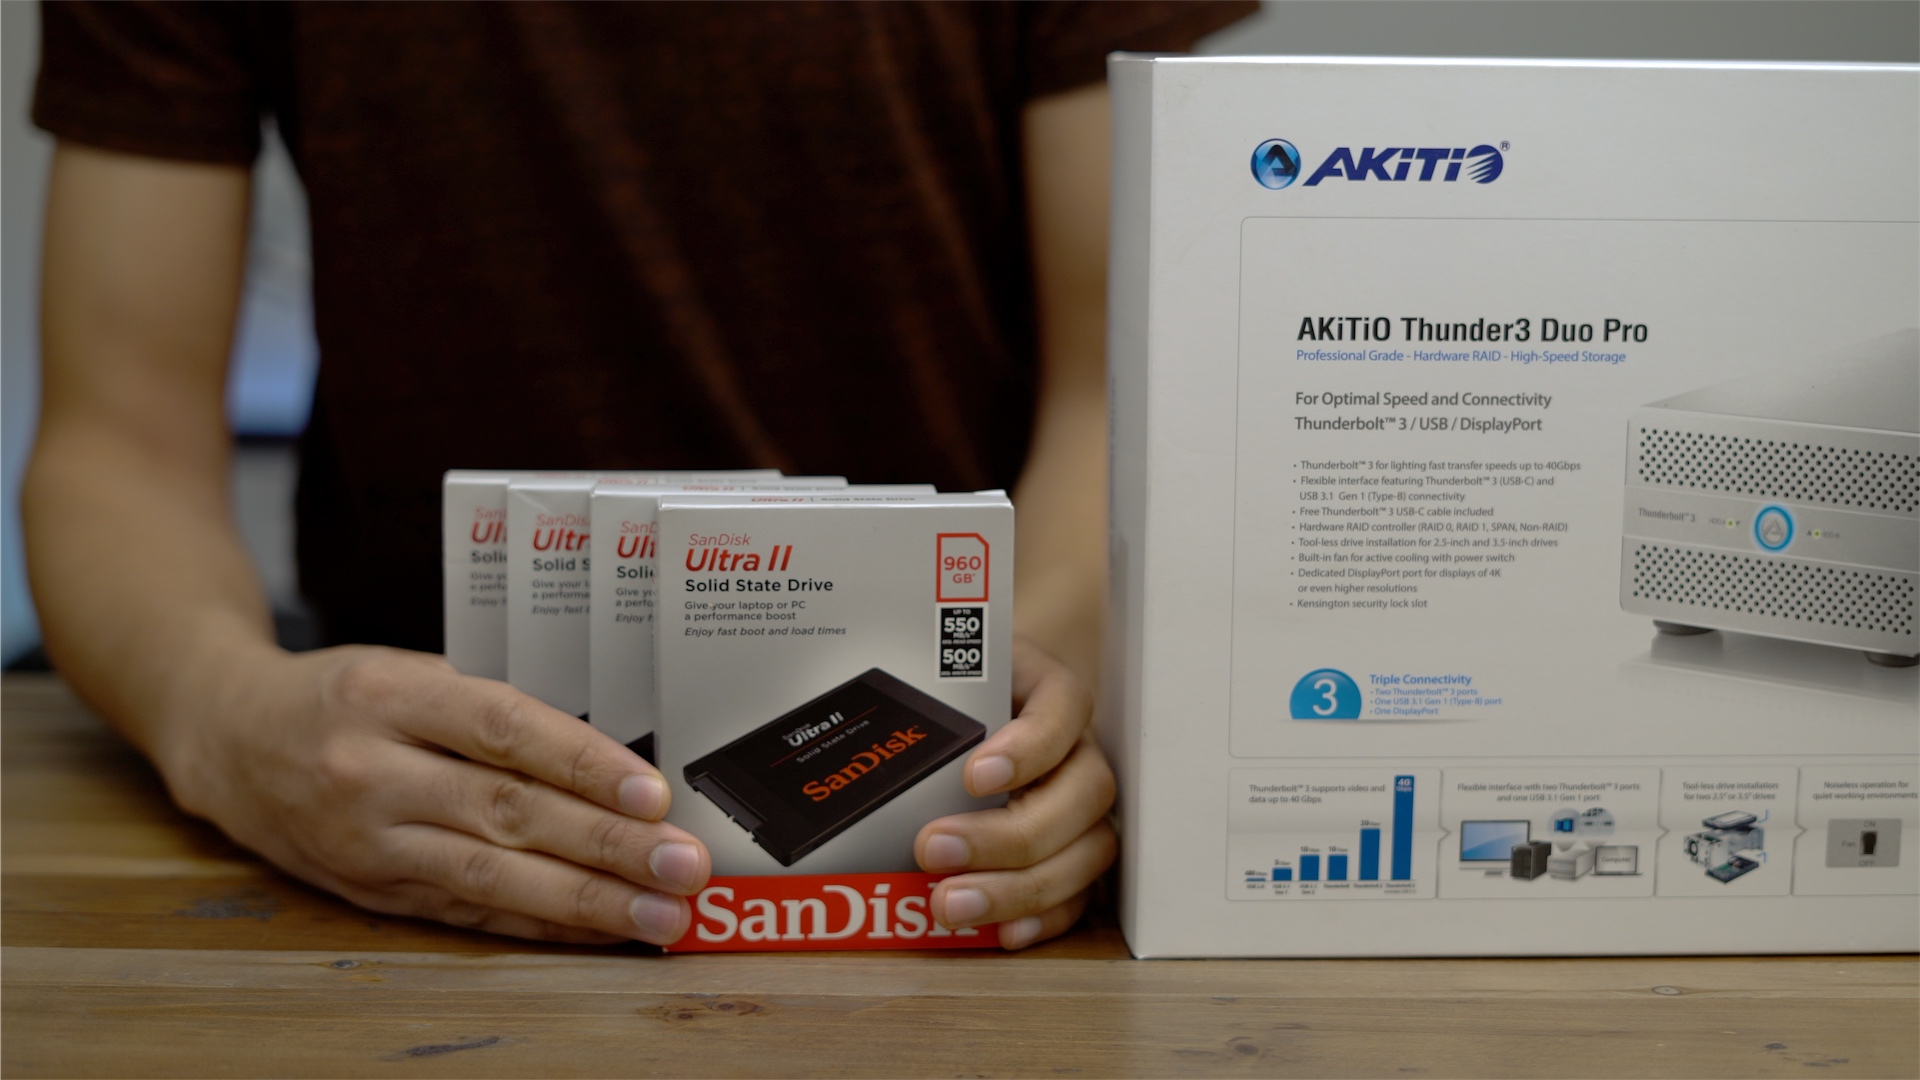 akitio-thunder3-duo-pro-quad-review-sandisk-drives